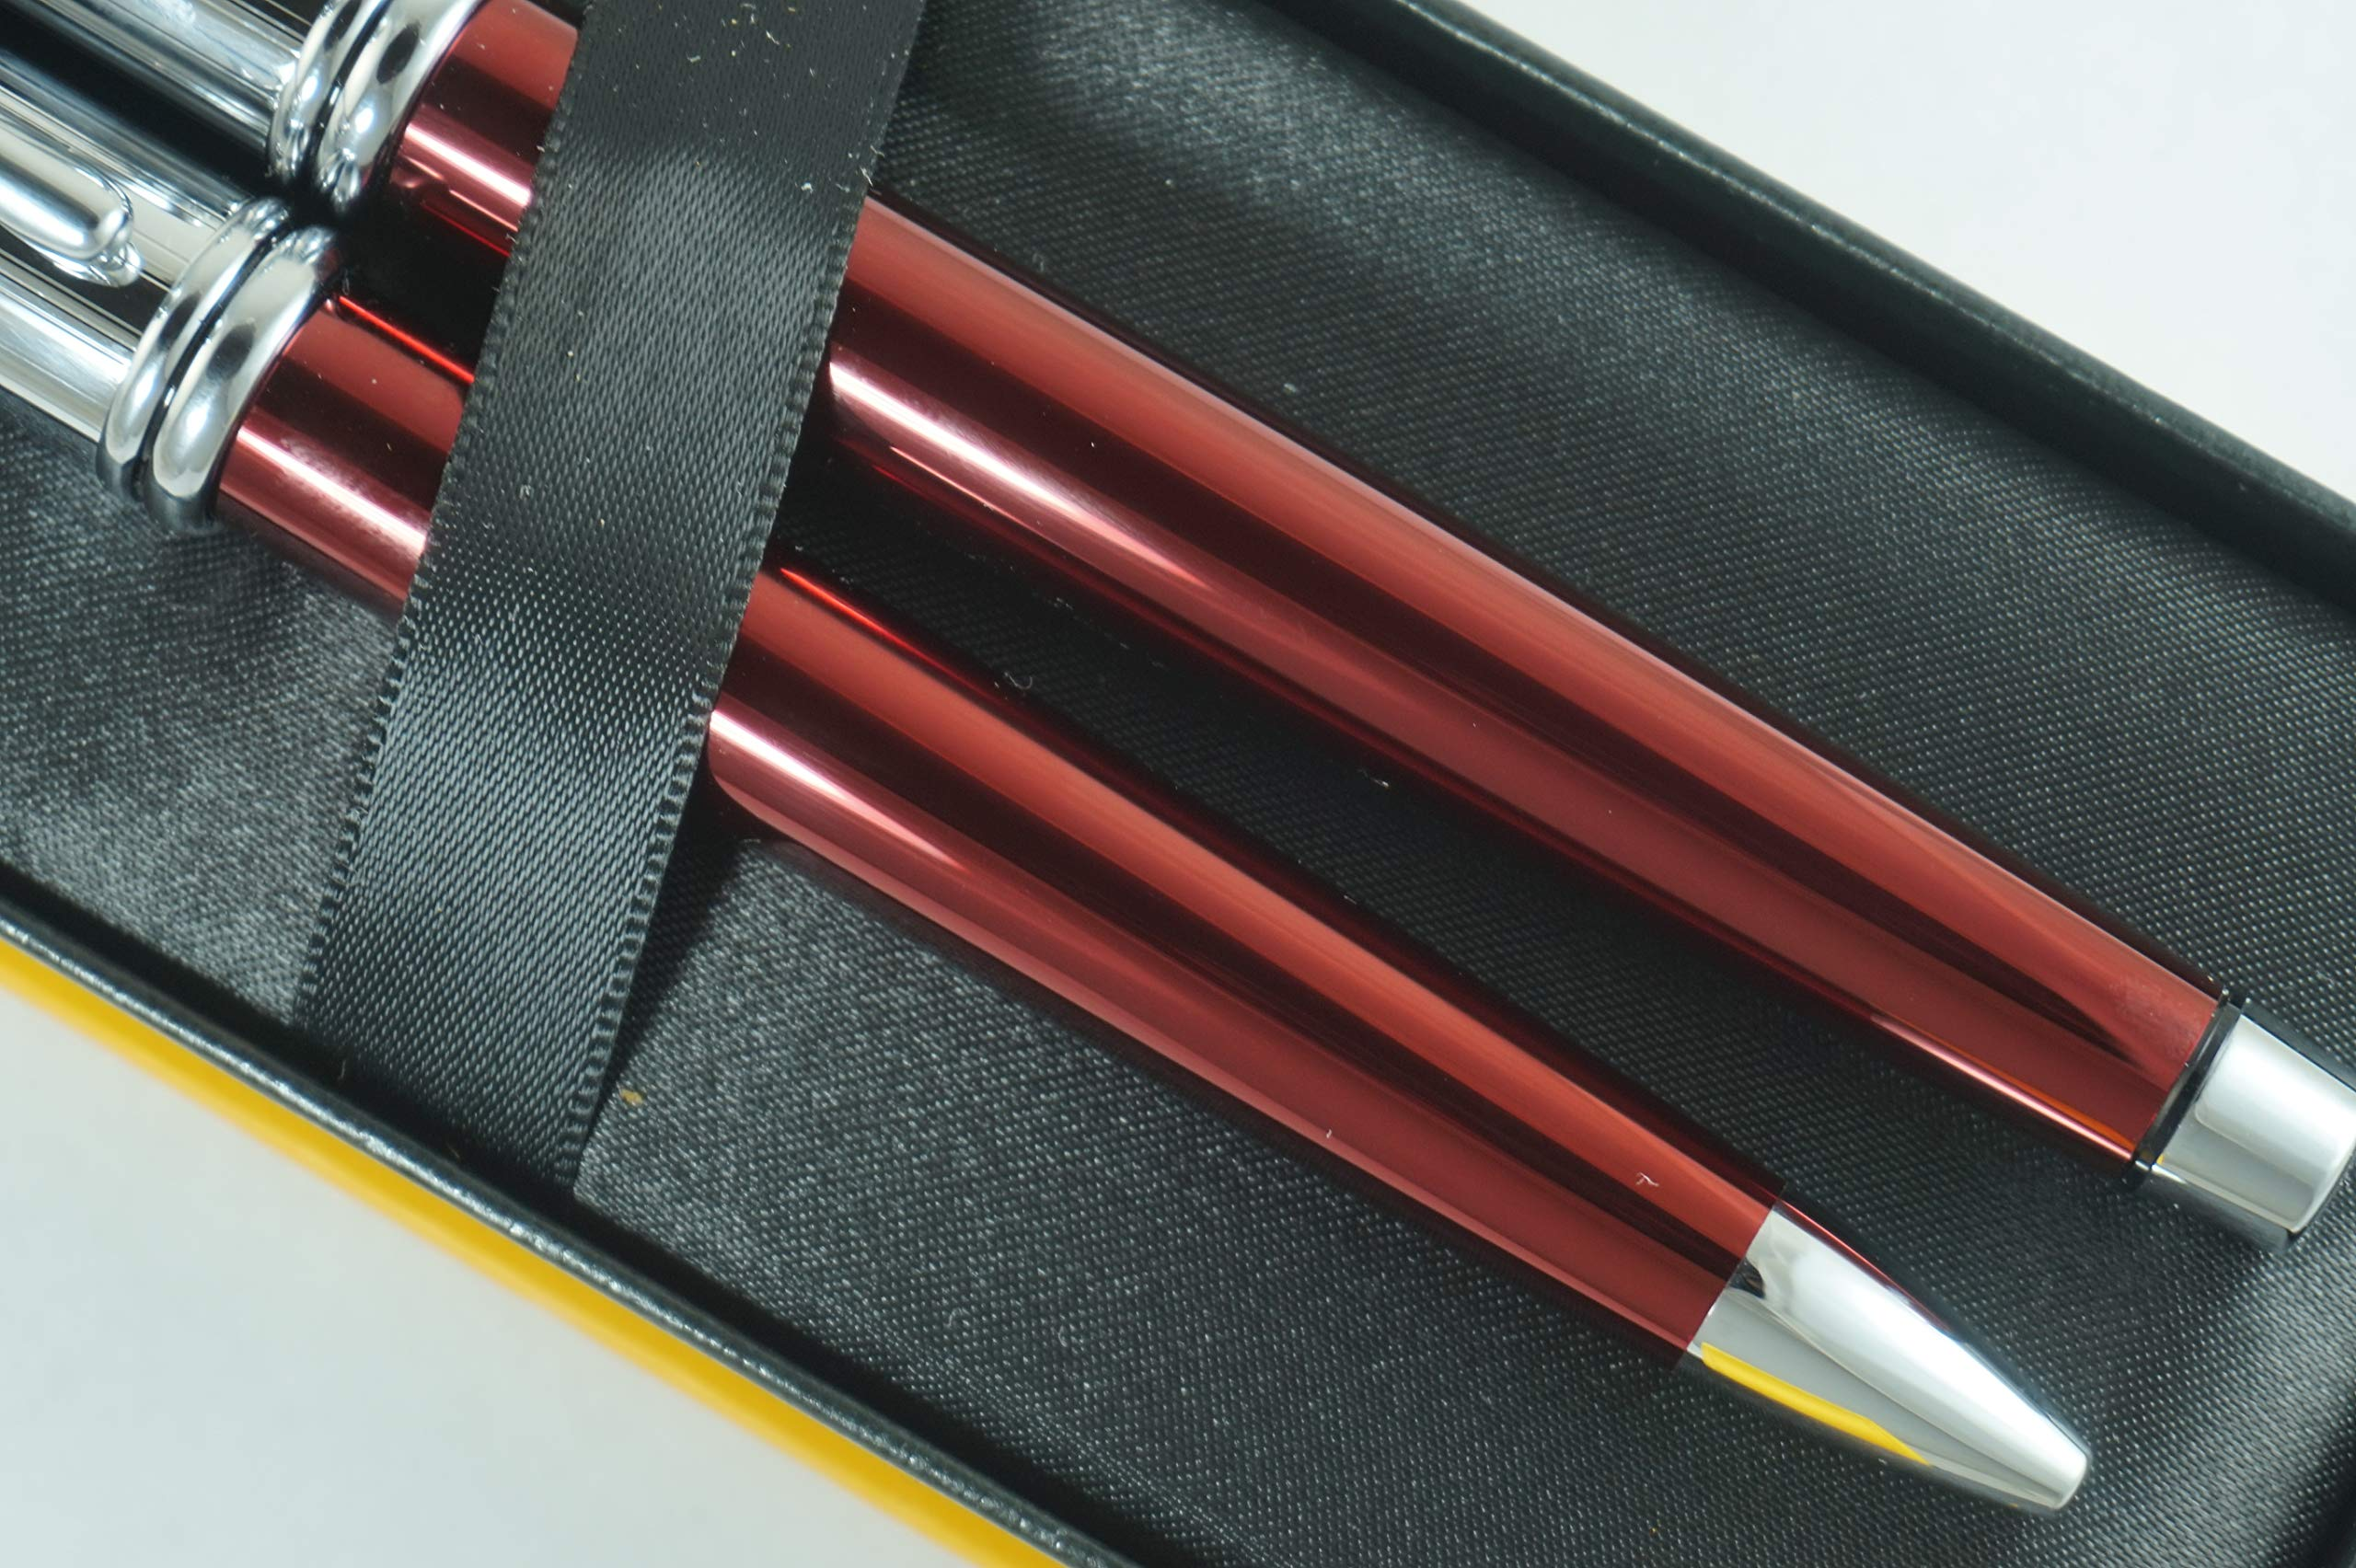 Cross Townsend Limited Edition Series Metallic Ruby Red Selectip Gel Ink Rollerball Pen and Ballpoint Pen Set Rare Combo of Cross Pen Sets by A.T. Cross (Image #2)